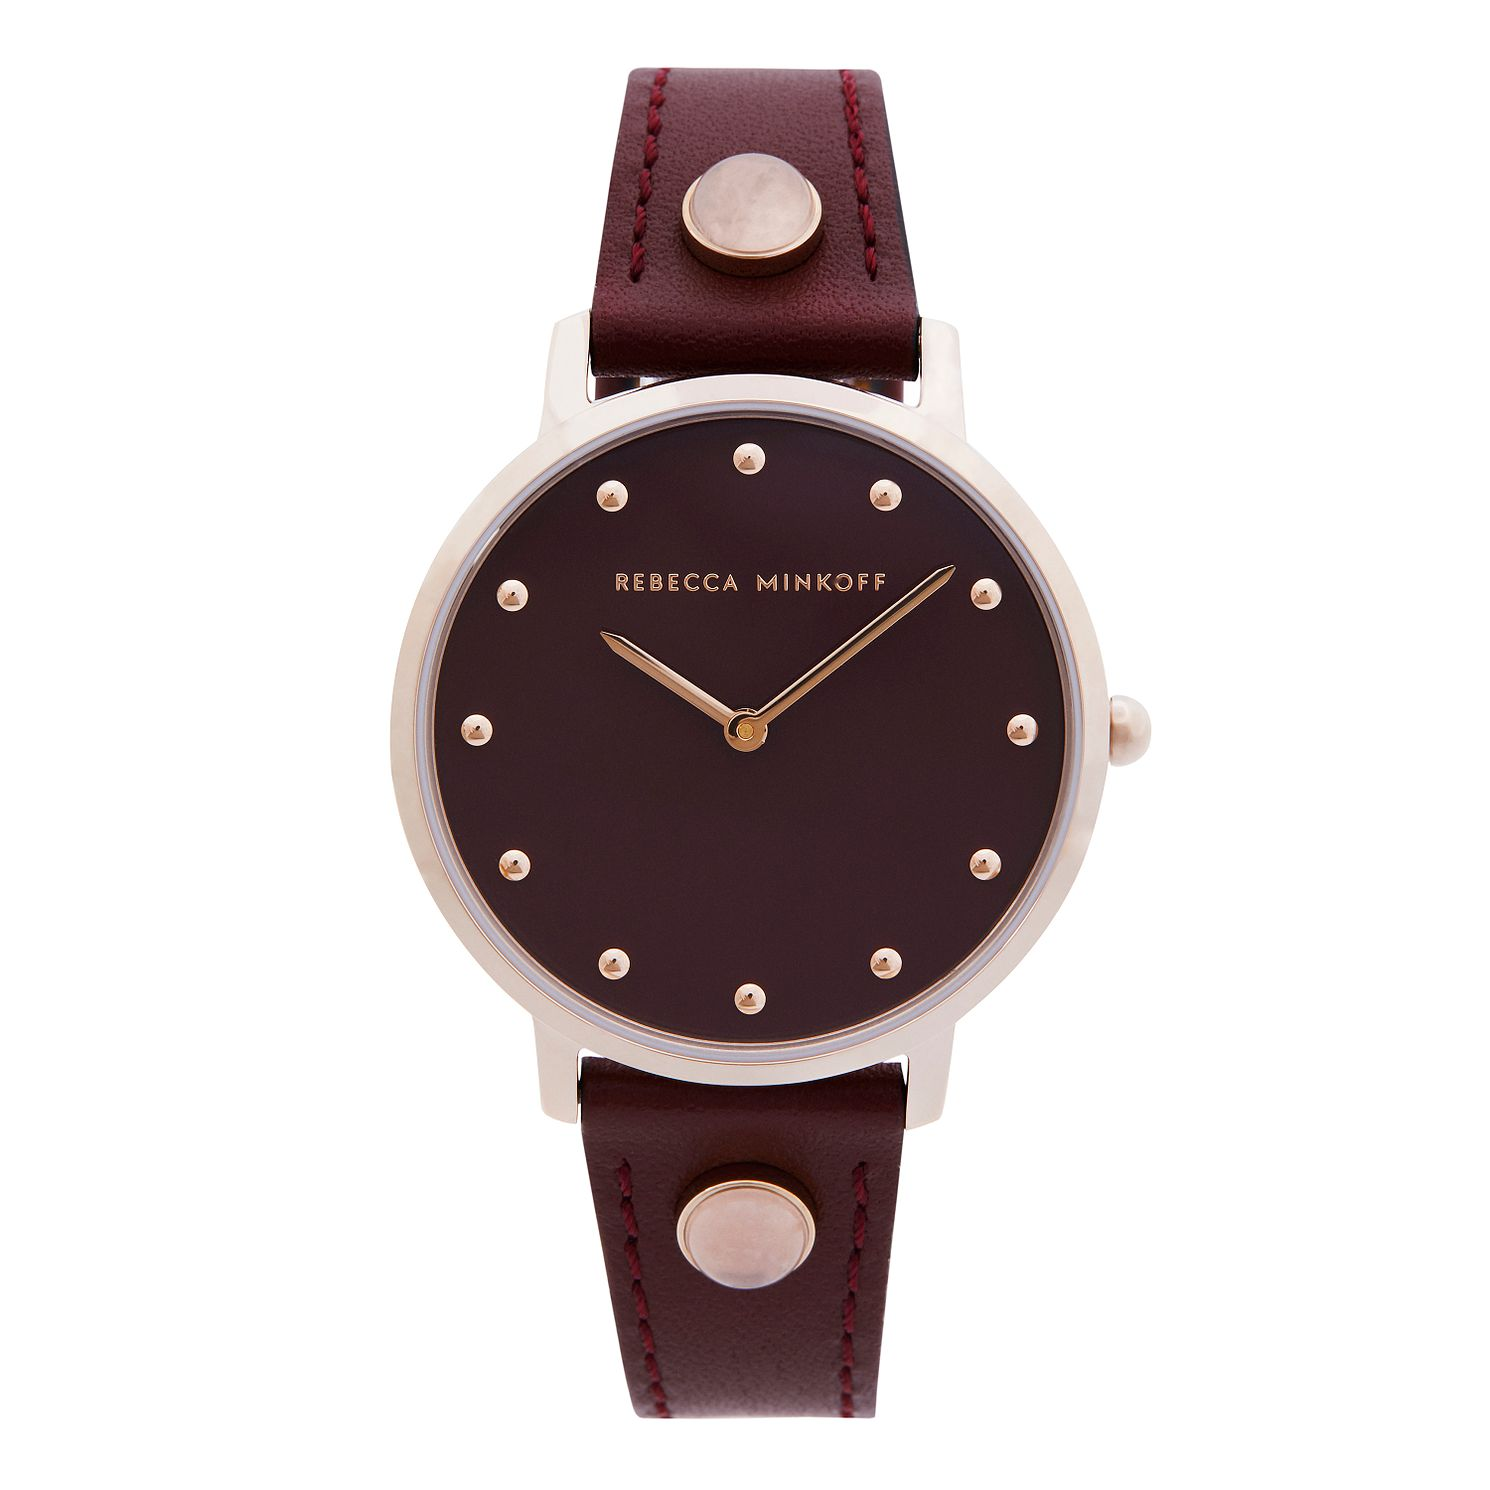 Rebecca Minkoff Major Ladies' Bordeaux Leather Strap Watch - Product number 5246083